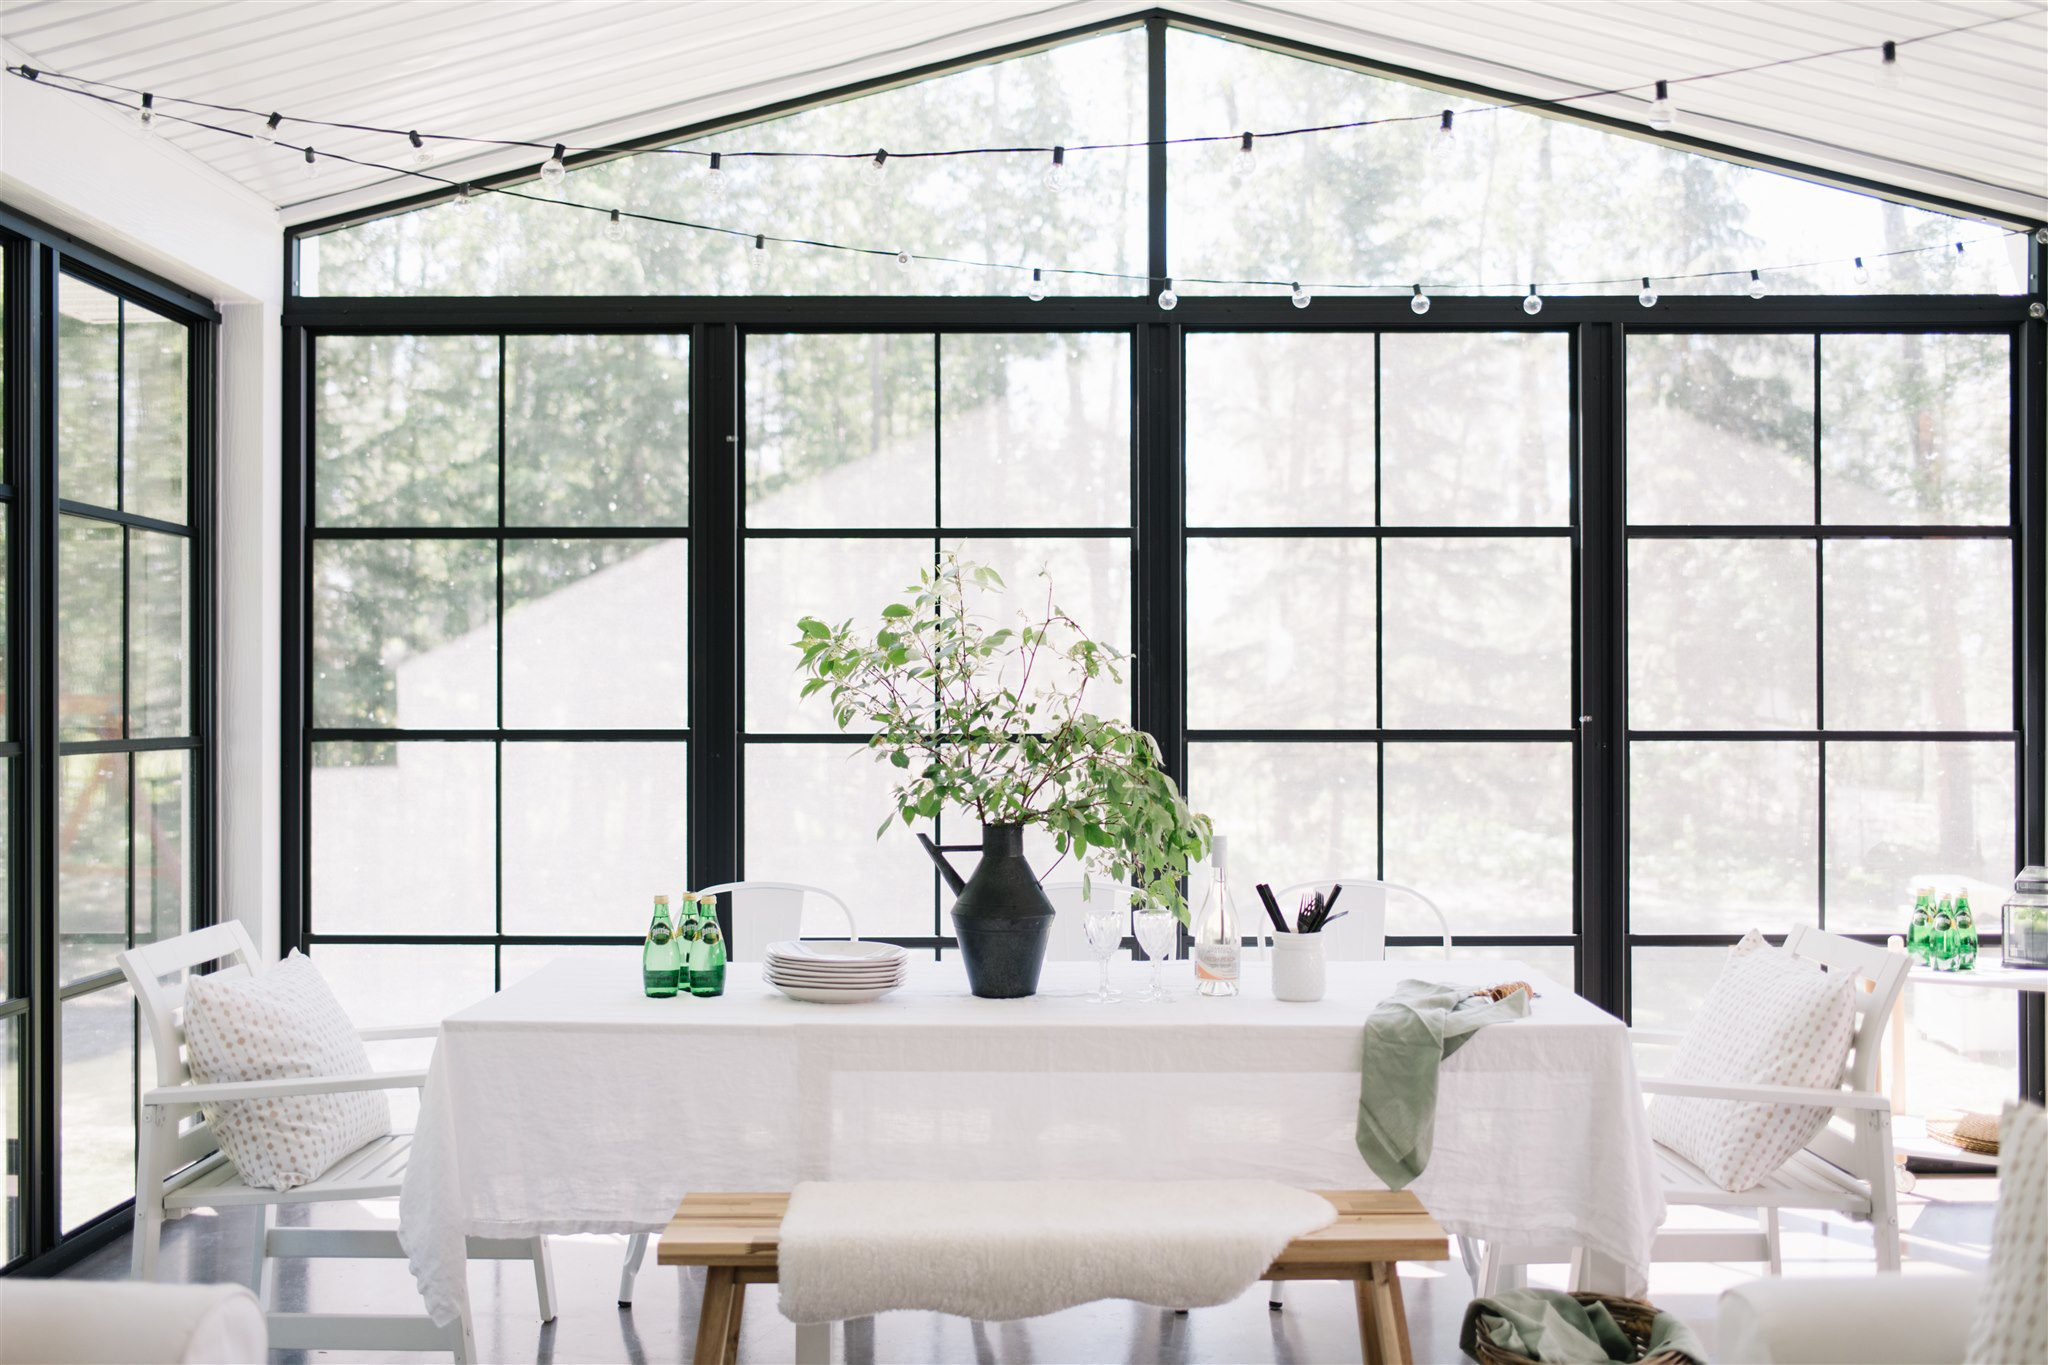 dining room table in an outdoor screen room with patio lights above